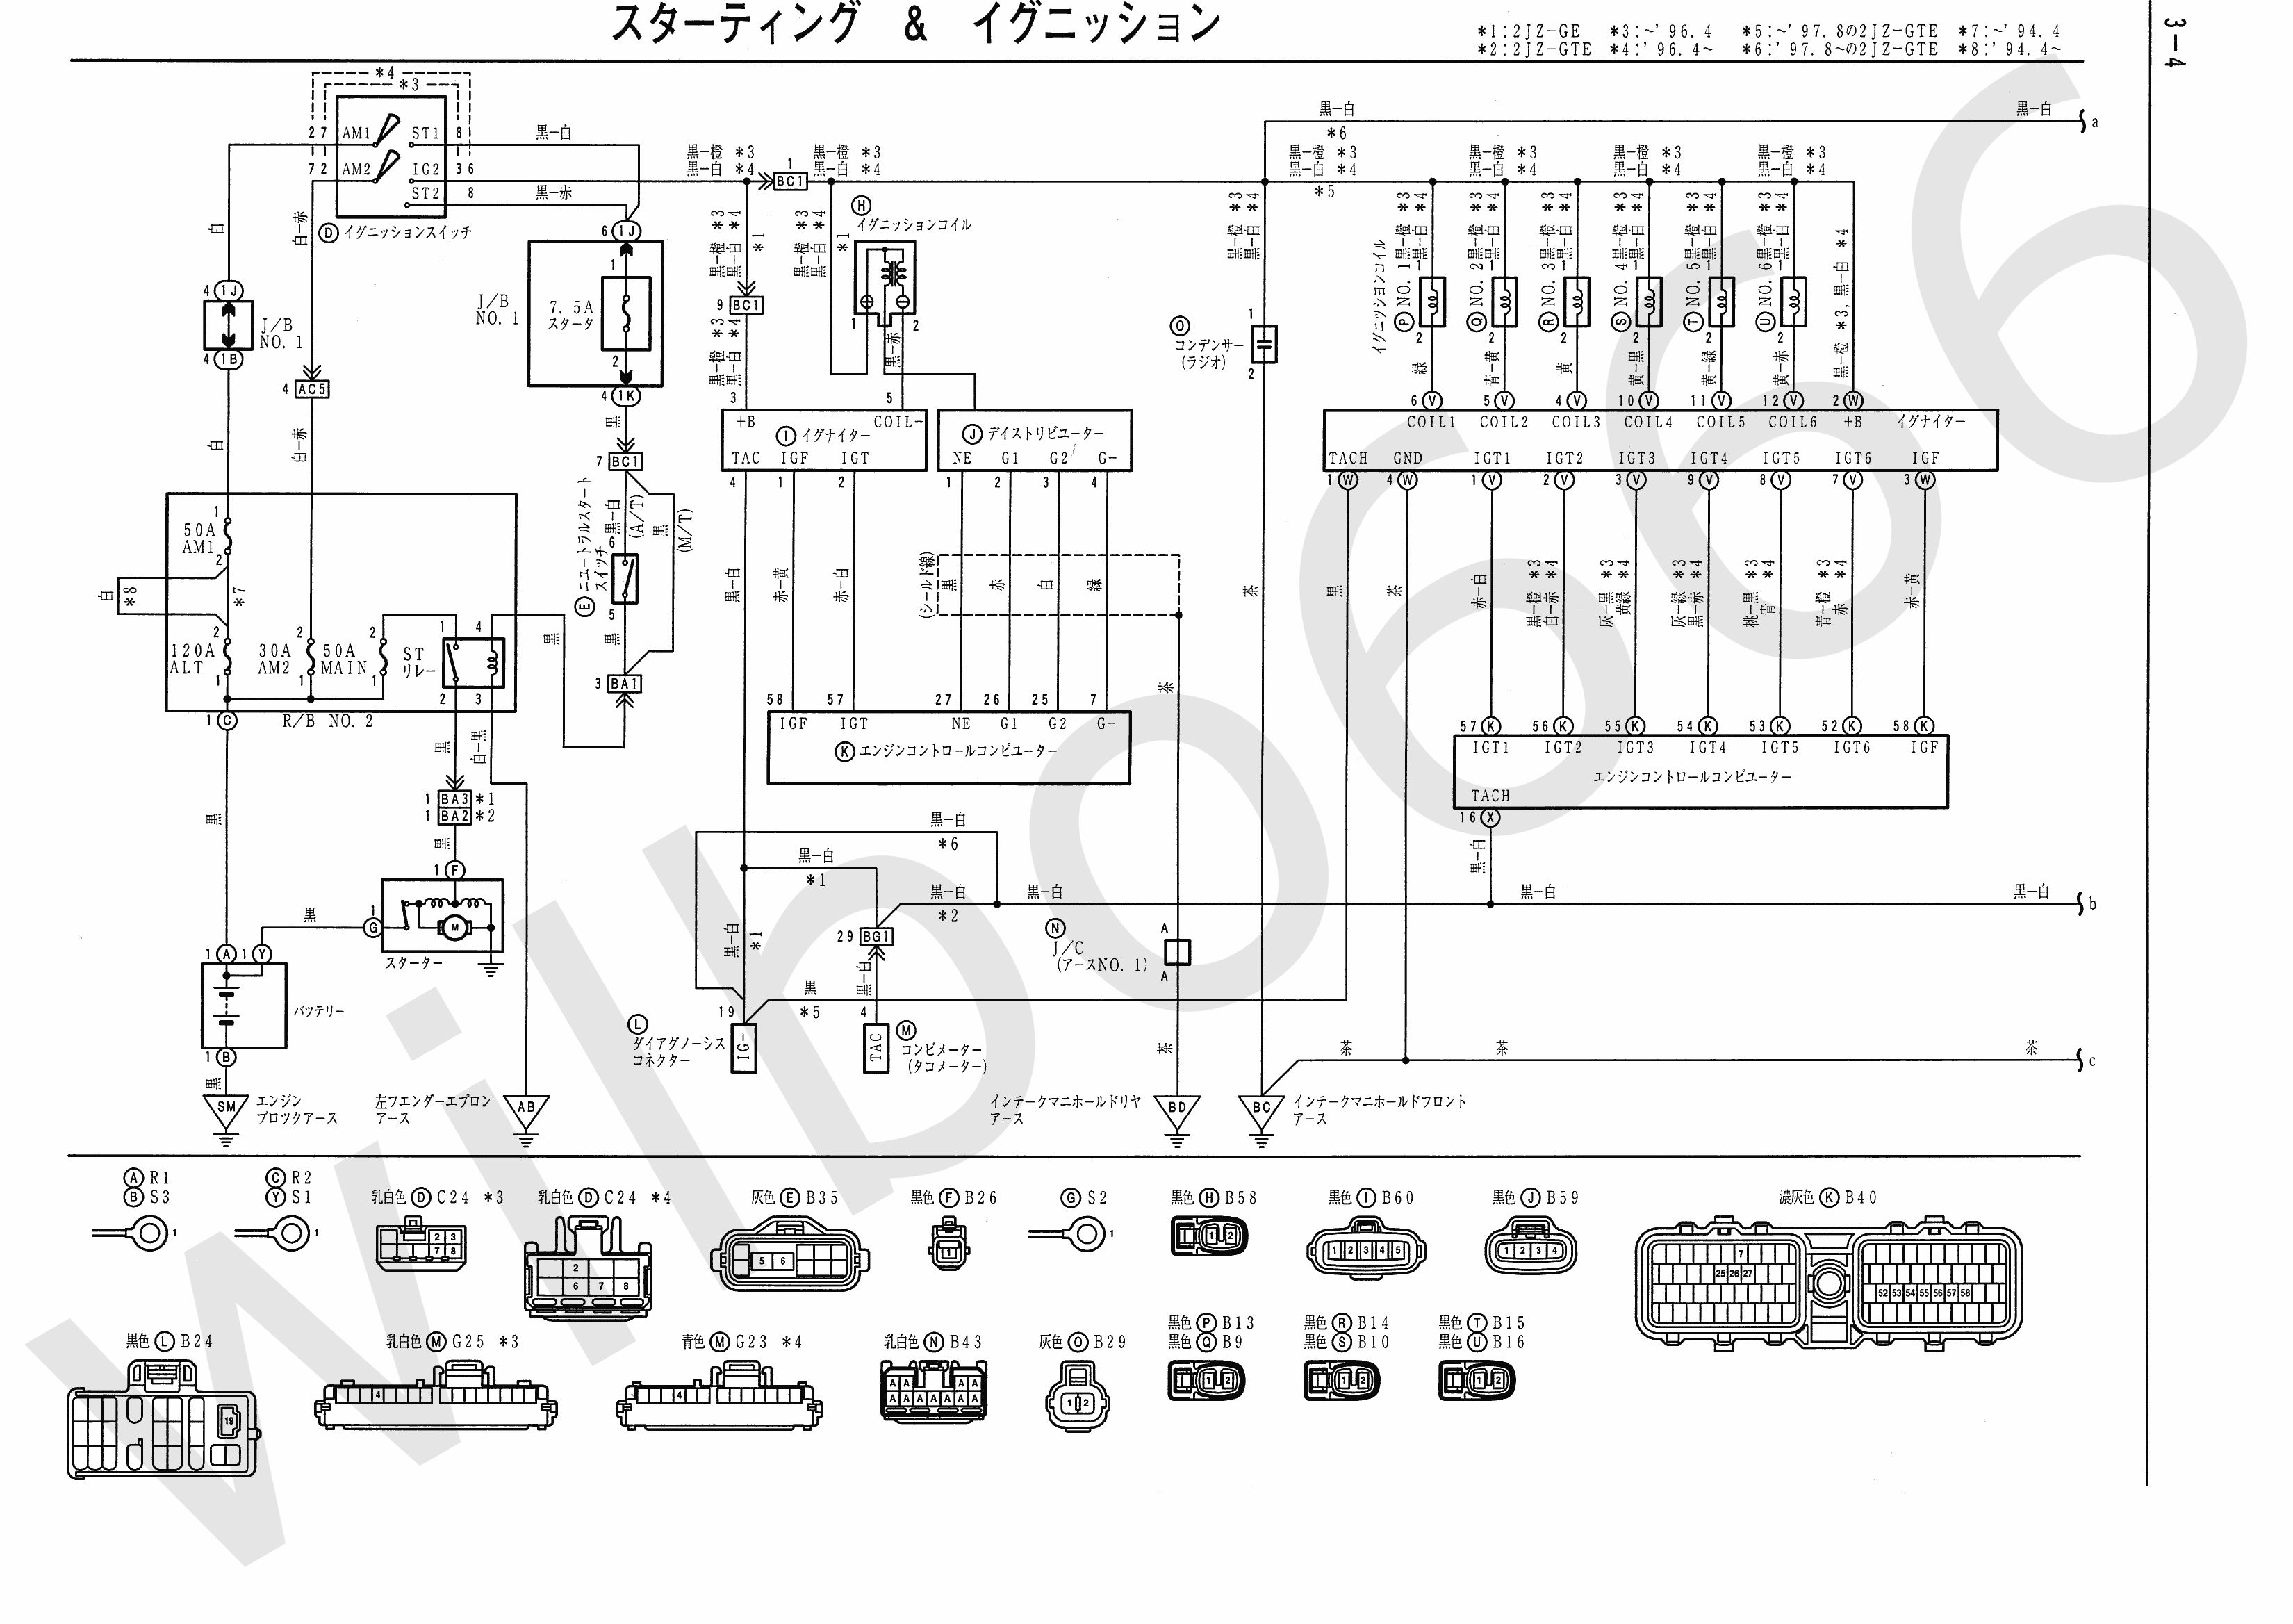 JZA80 Electrical Wiring Diagram 6742505 3 4?ssl\\\\\\\\\\\\\\\\\\\\\\\\\\\\\\\\\\\\\\\\\\\\\\\\\\\\\\\\\\\=1 ls1 wiring diagram & 1 wire gm alternator wiring diagram ls1 delco vy ls1 wiring diagram at creativeand.co